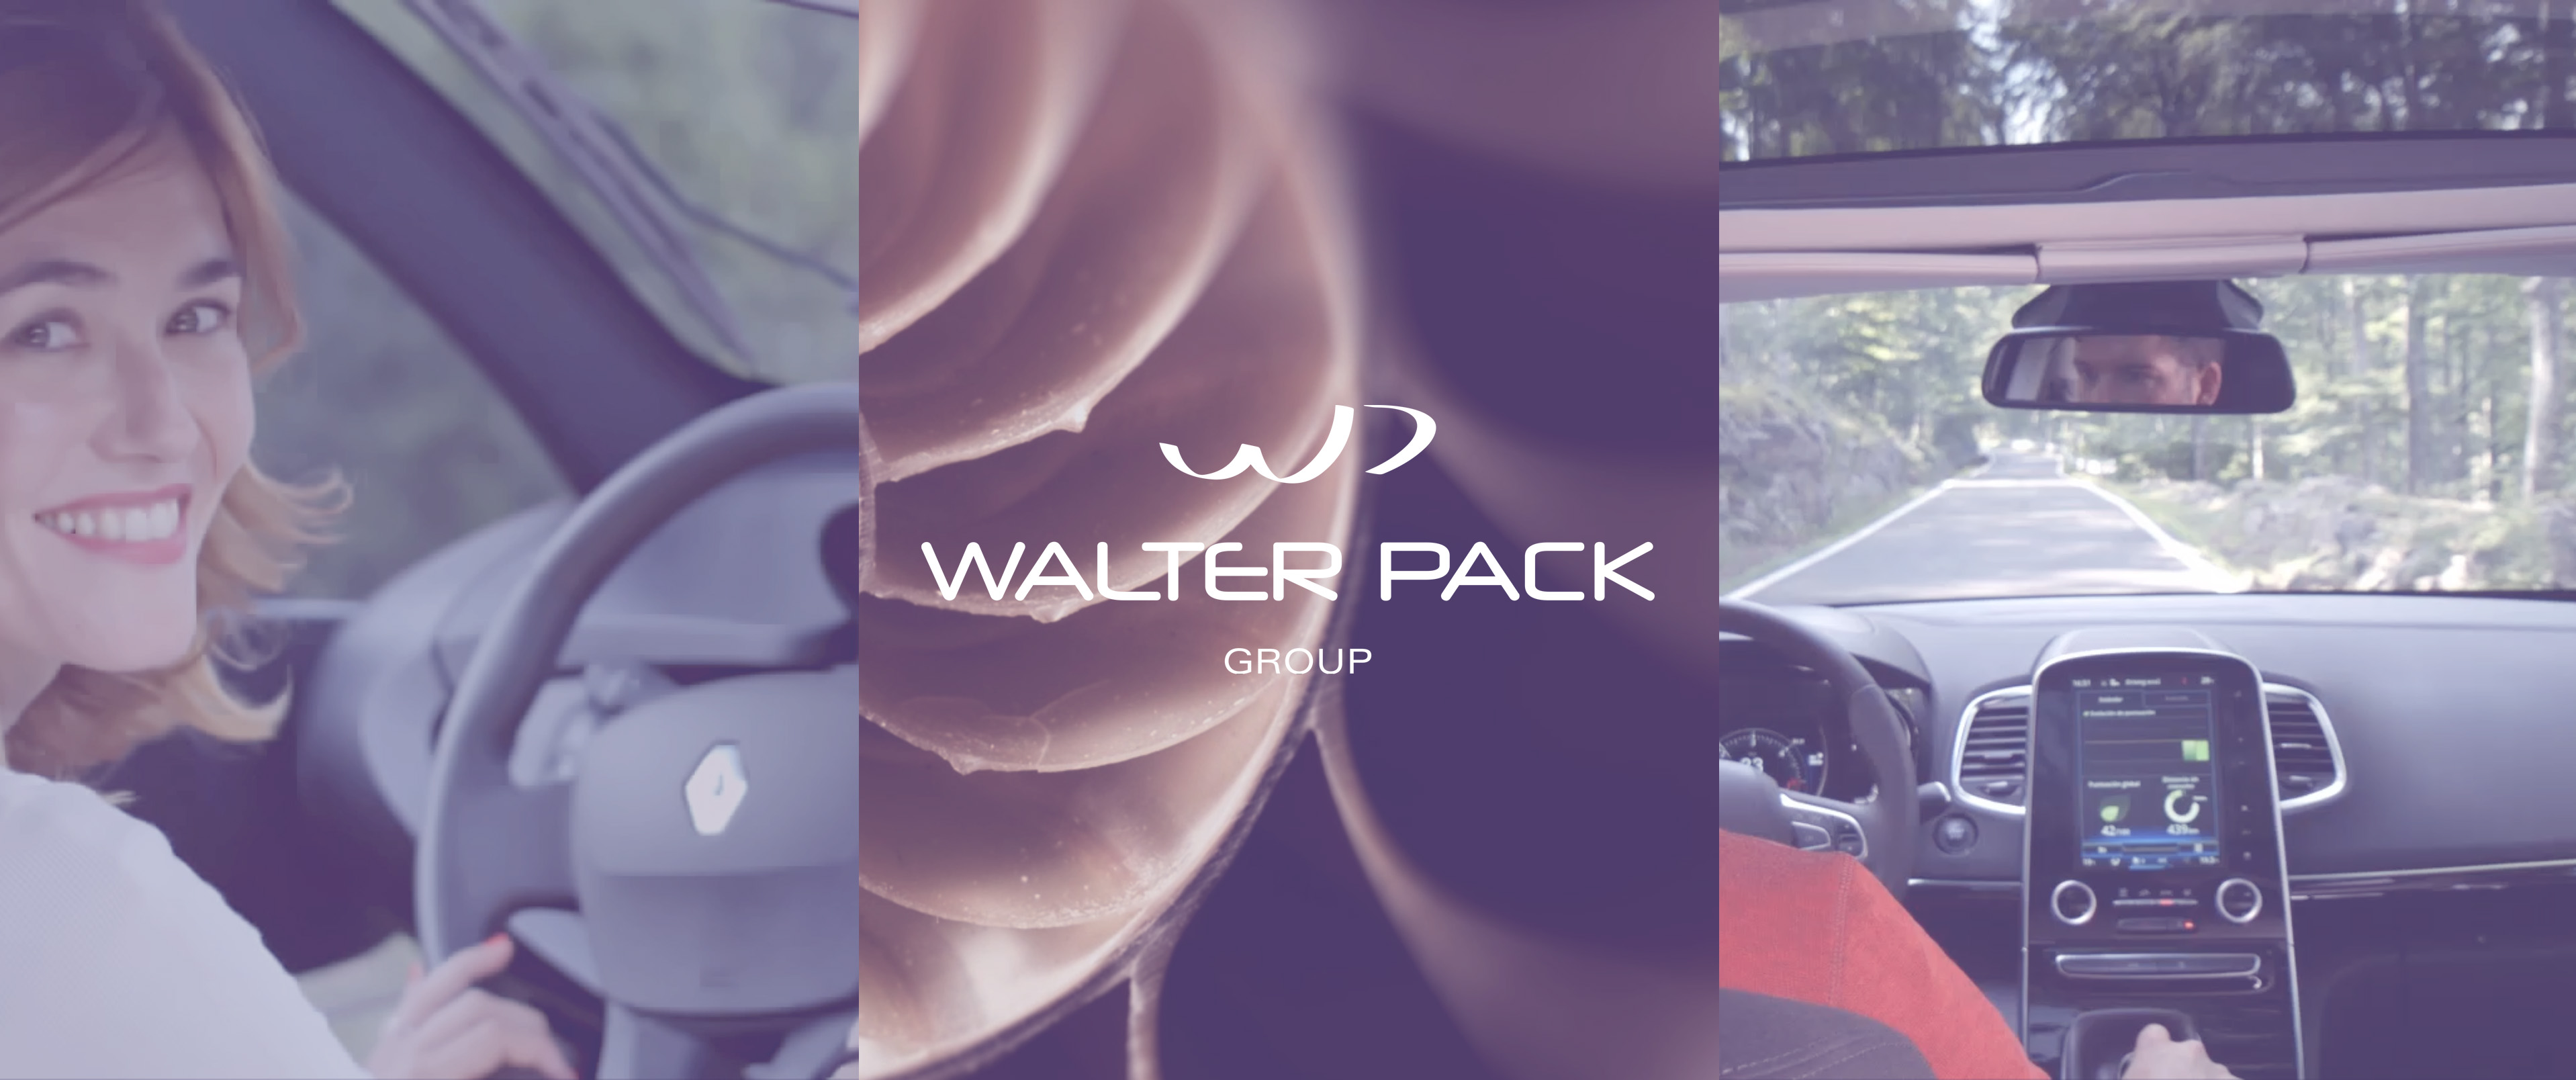 Walter Pack Group